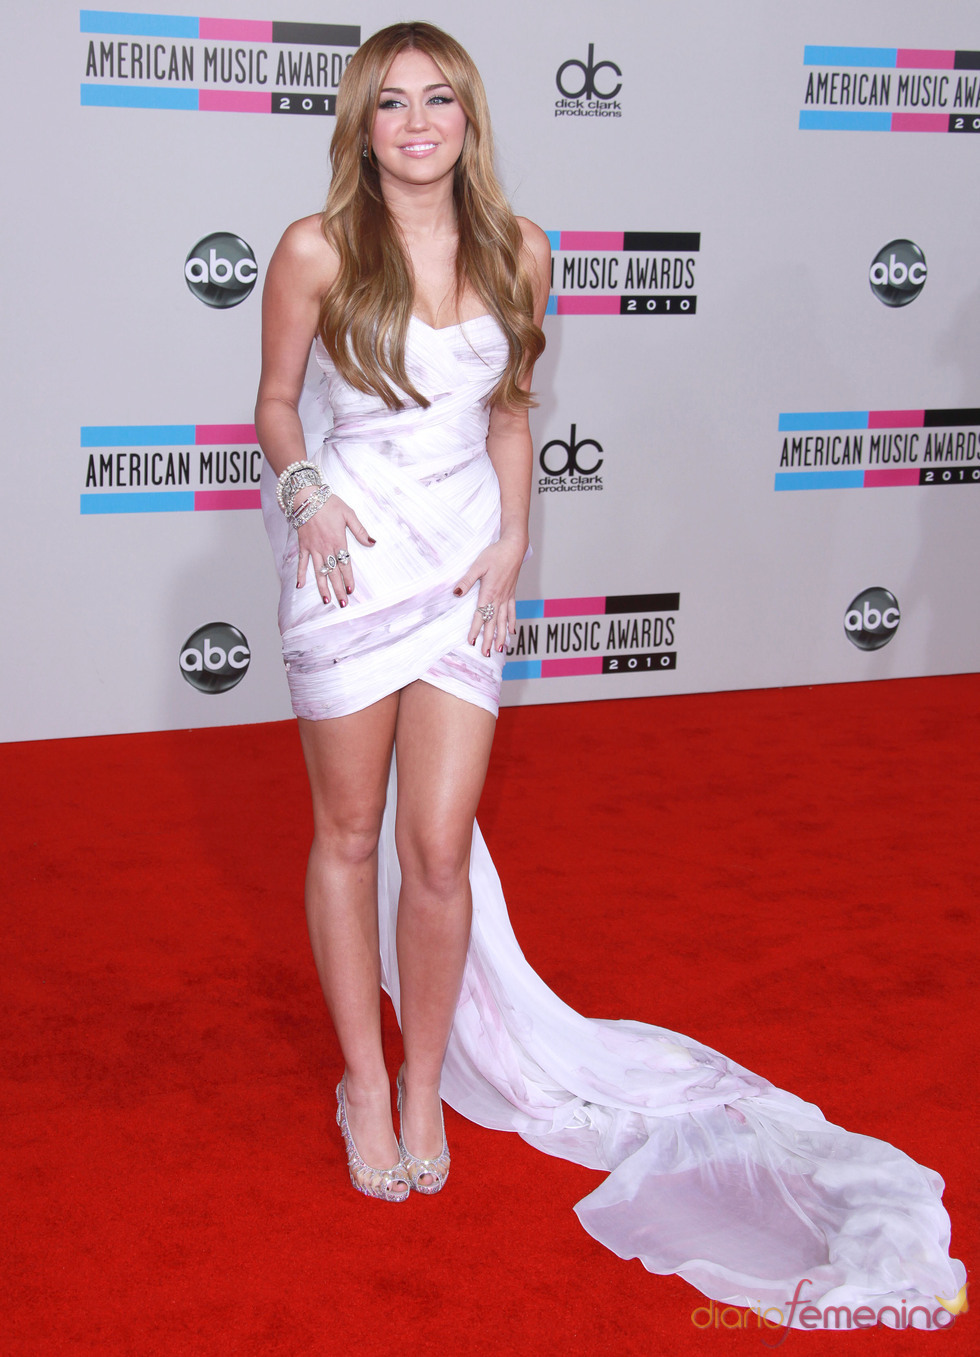 Miley Cyrus en los American Music Awards 2010